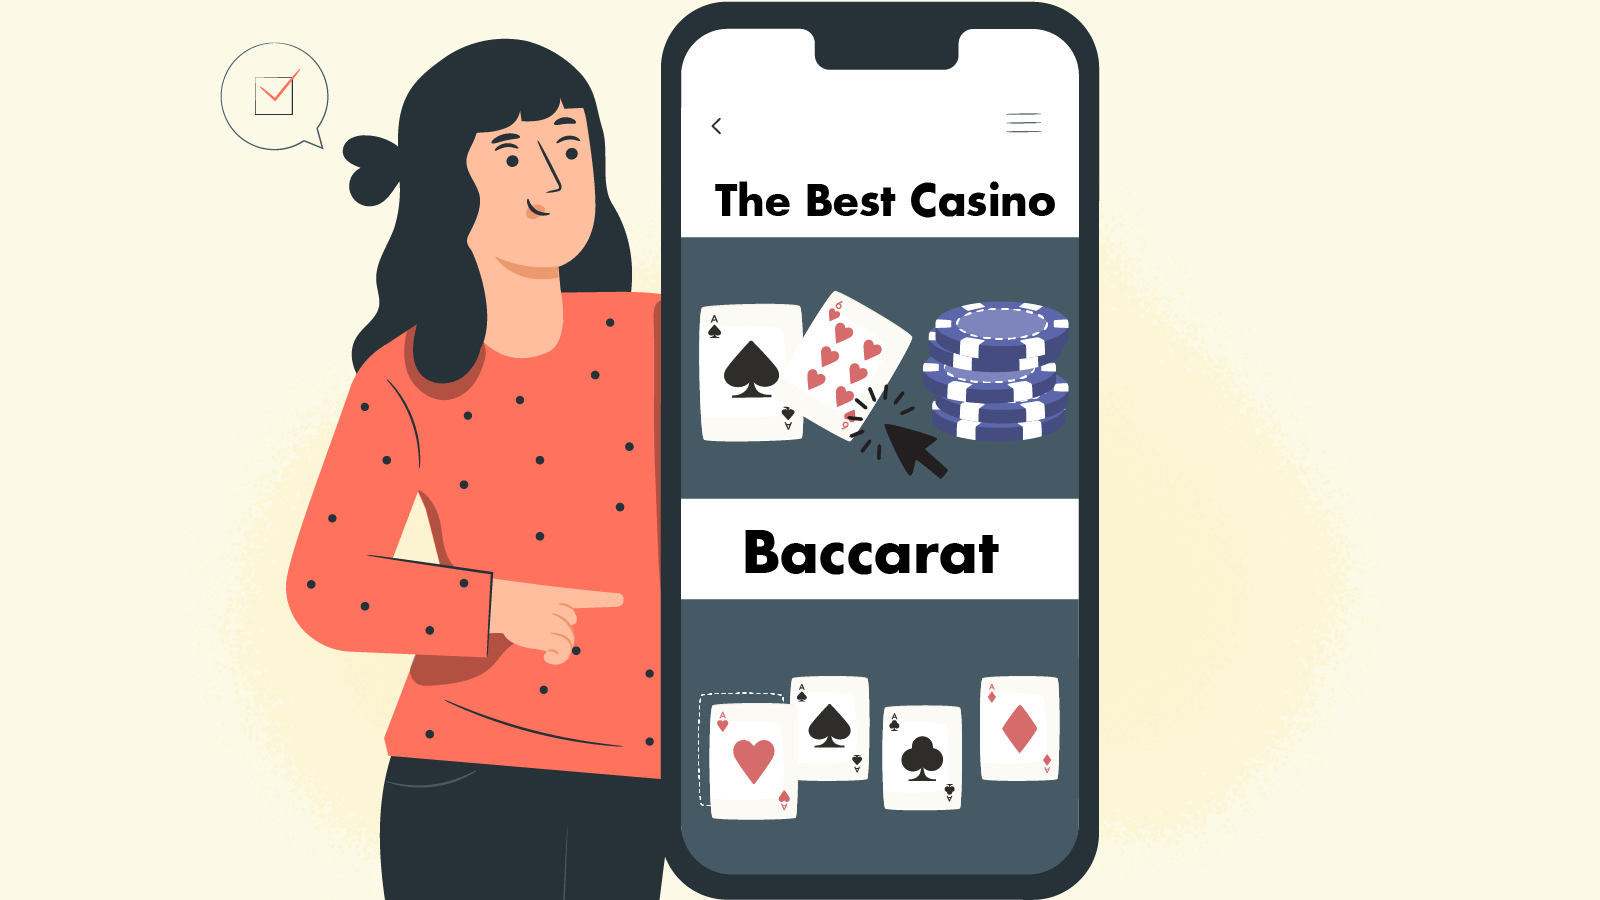 The Best Casino for Baccarat